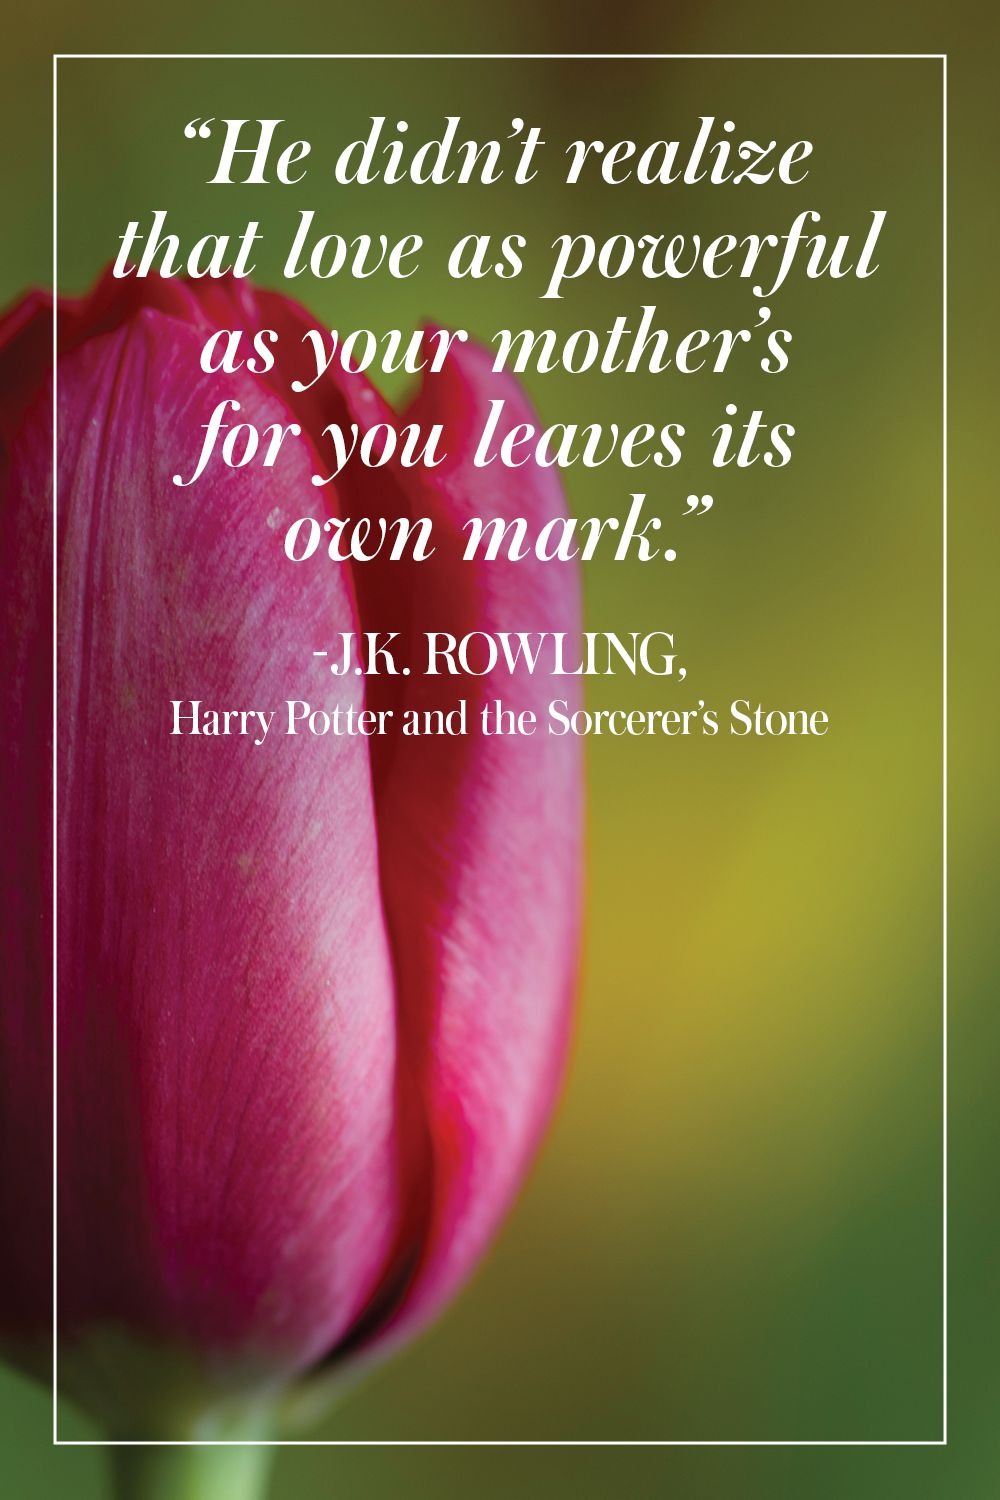 """""""He didn't realize that love as powerful as your mother's for you leaves its own mark."""" - J.K. Rowling, Harry Potter and the Sorcerer's Stone"""